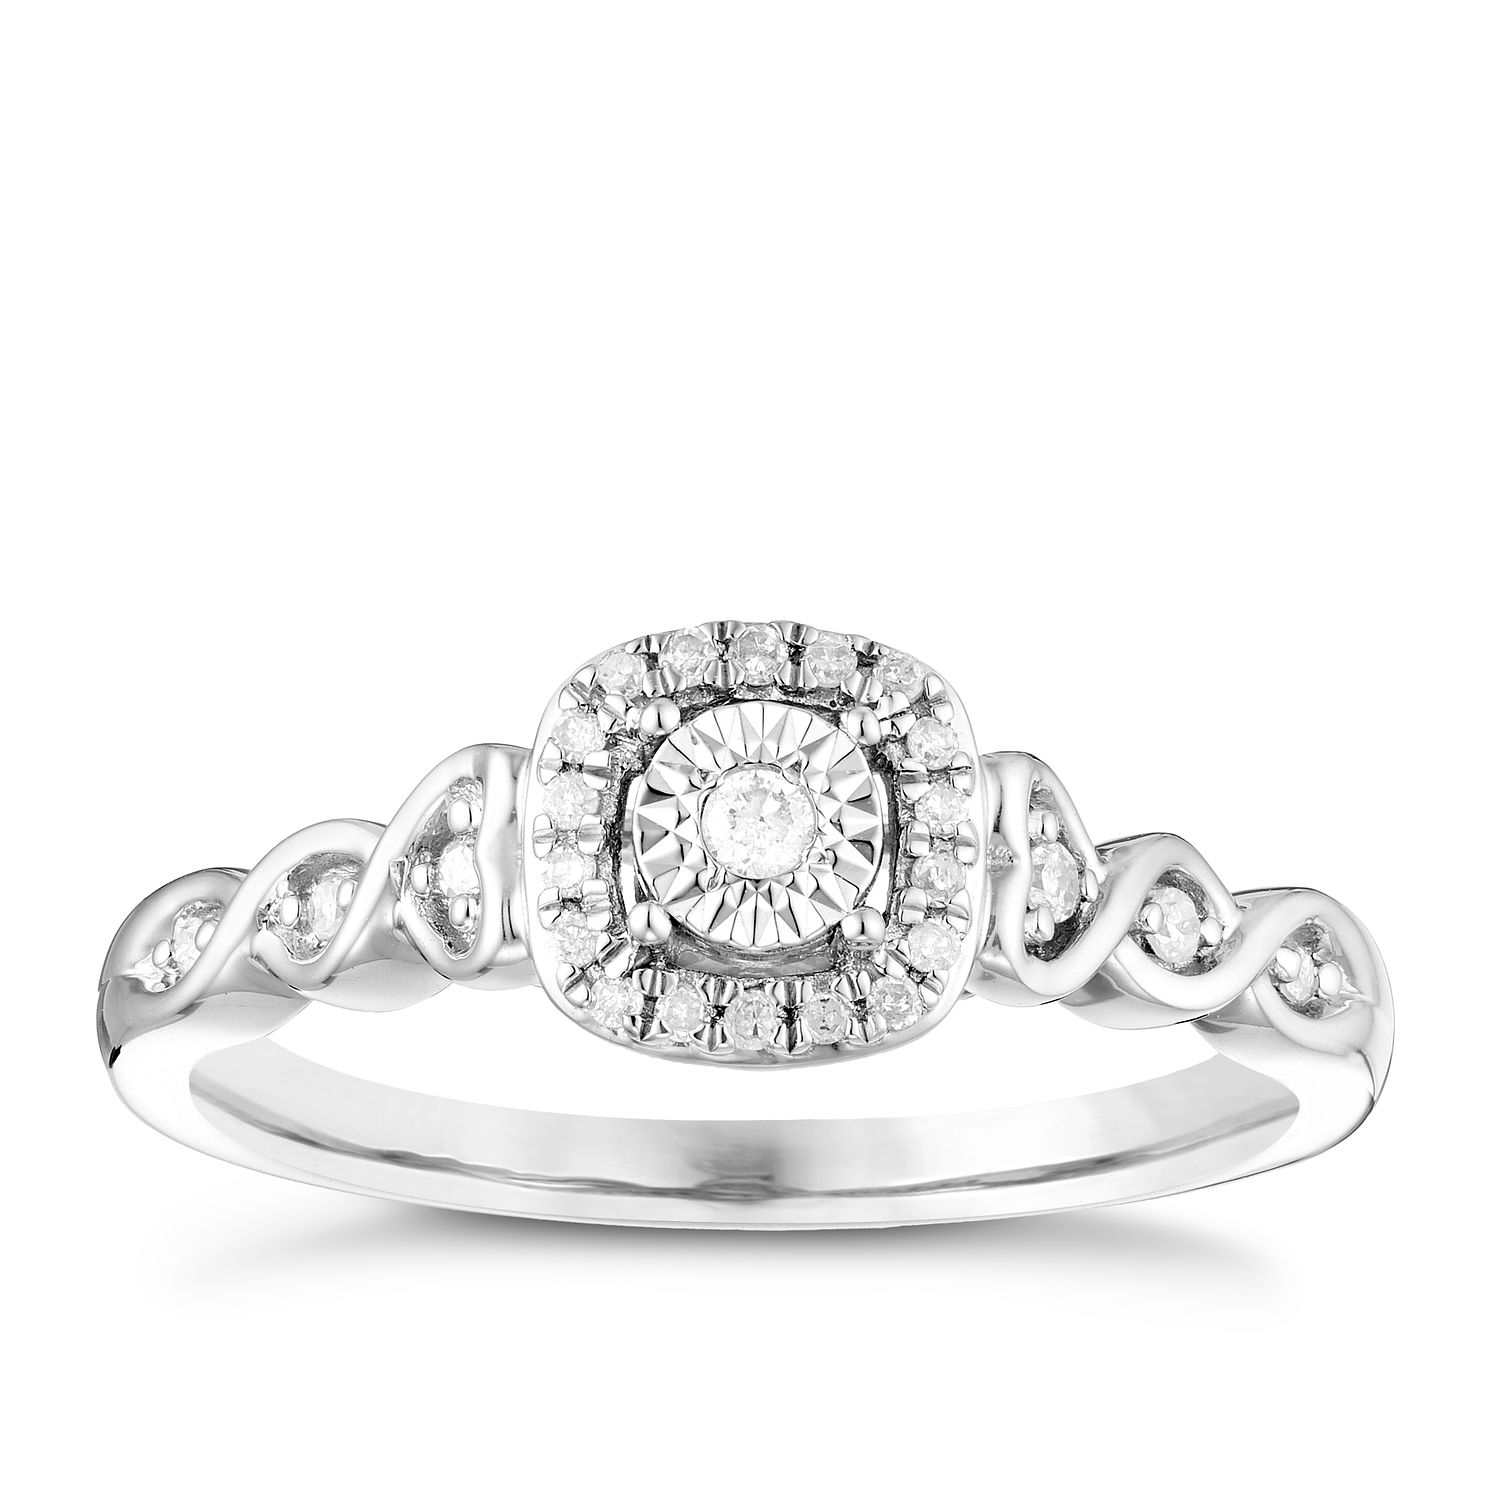 rings product mackley jewelers wedding a striking ring cluster s diamond